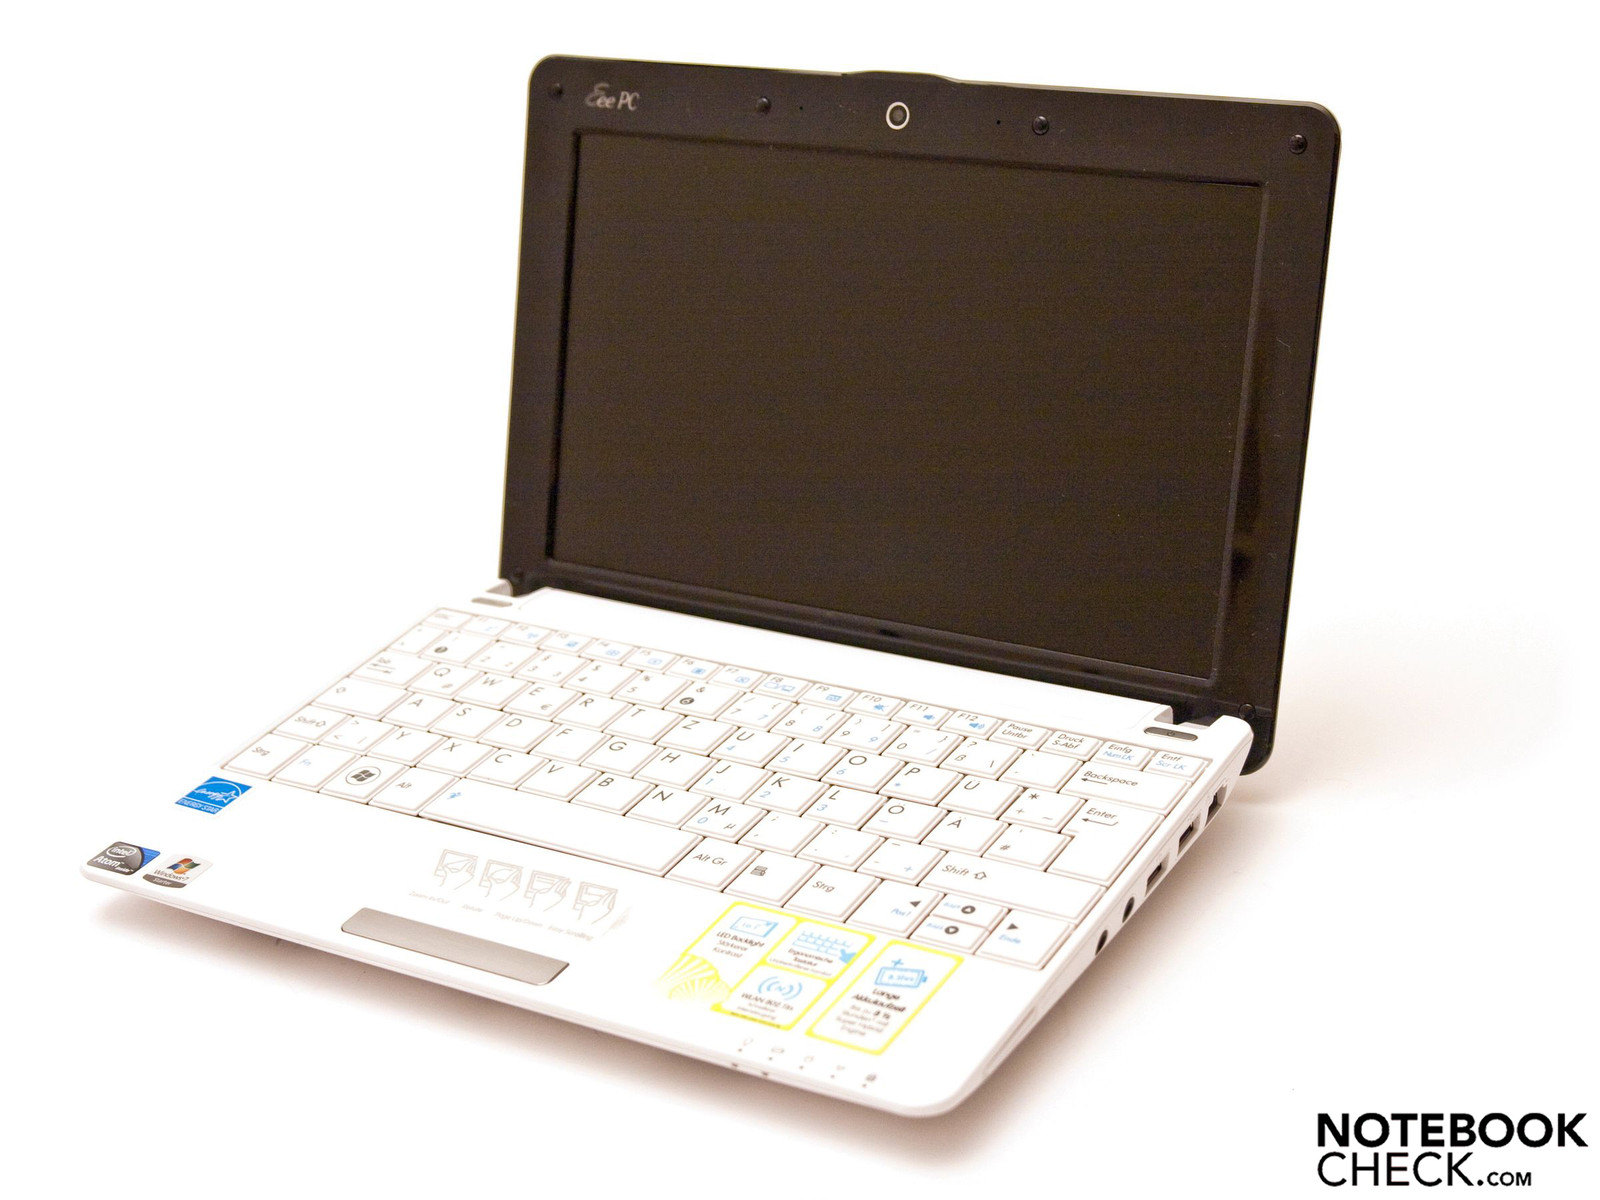 Review Asus Eee Pc 1005ha M Win7 Netbook Notebookcheck